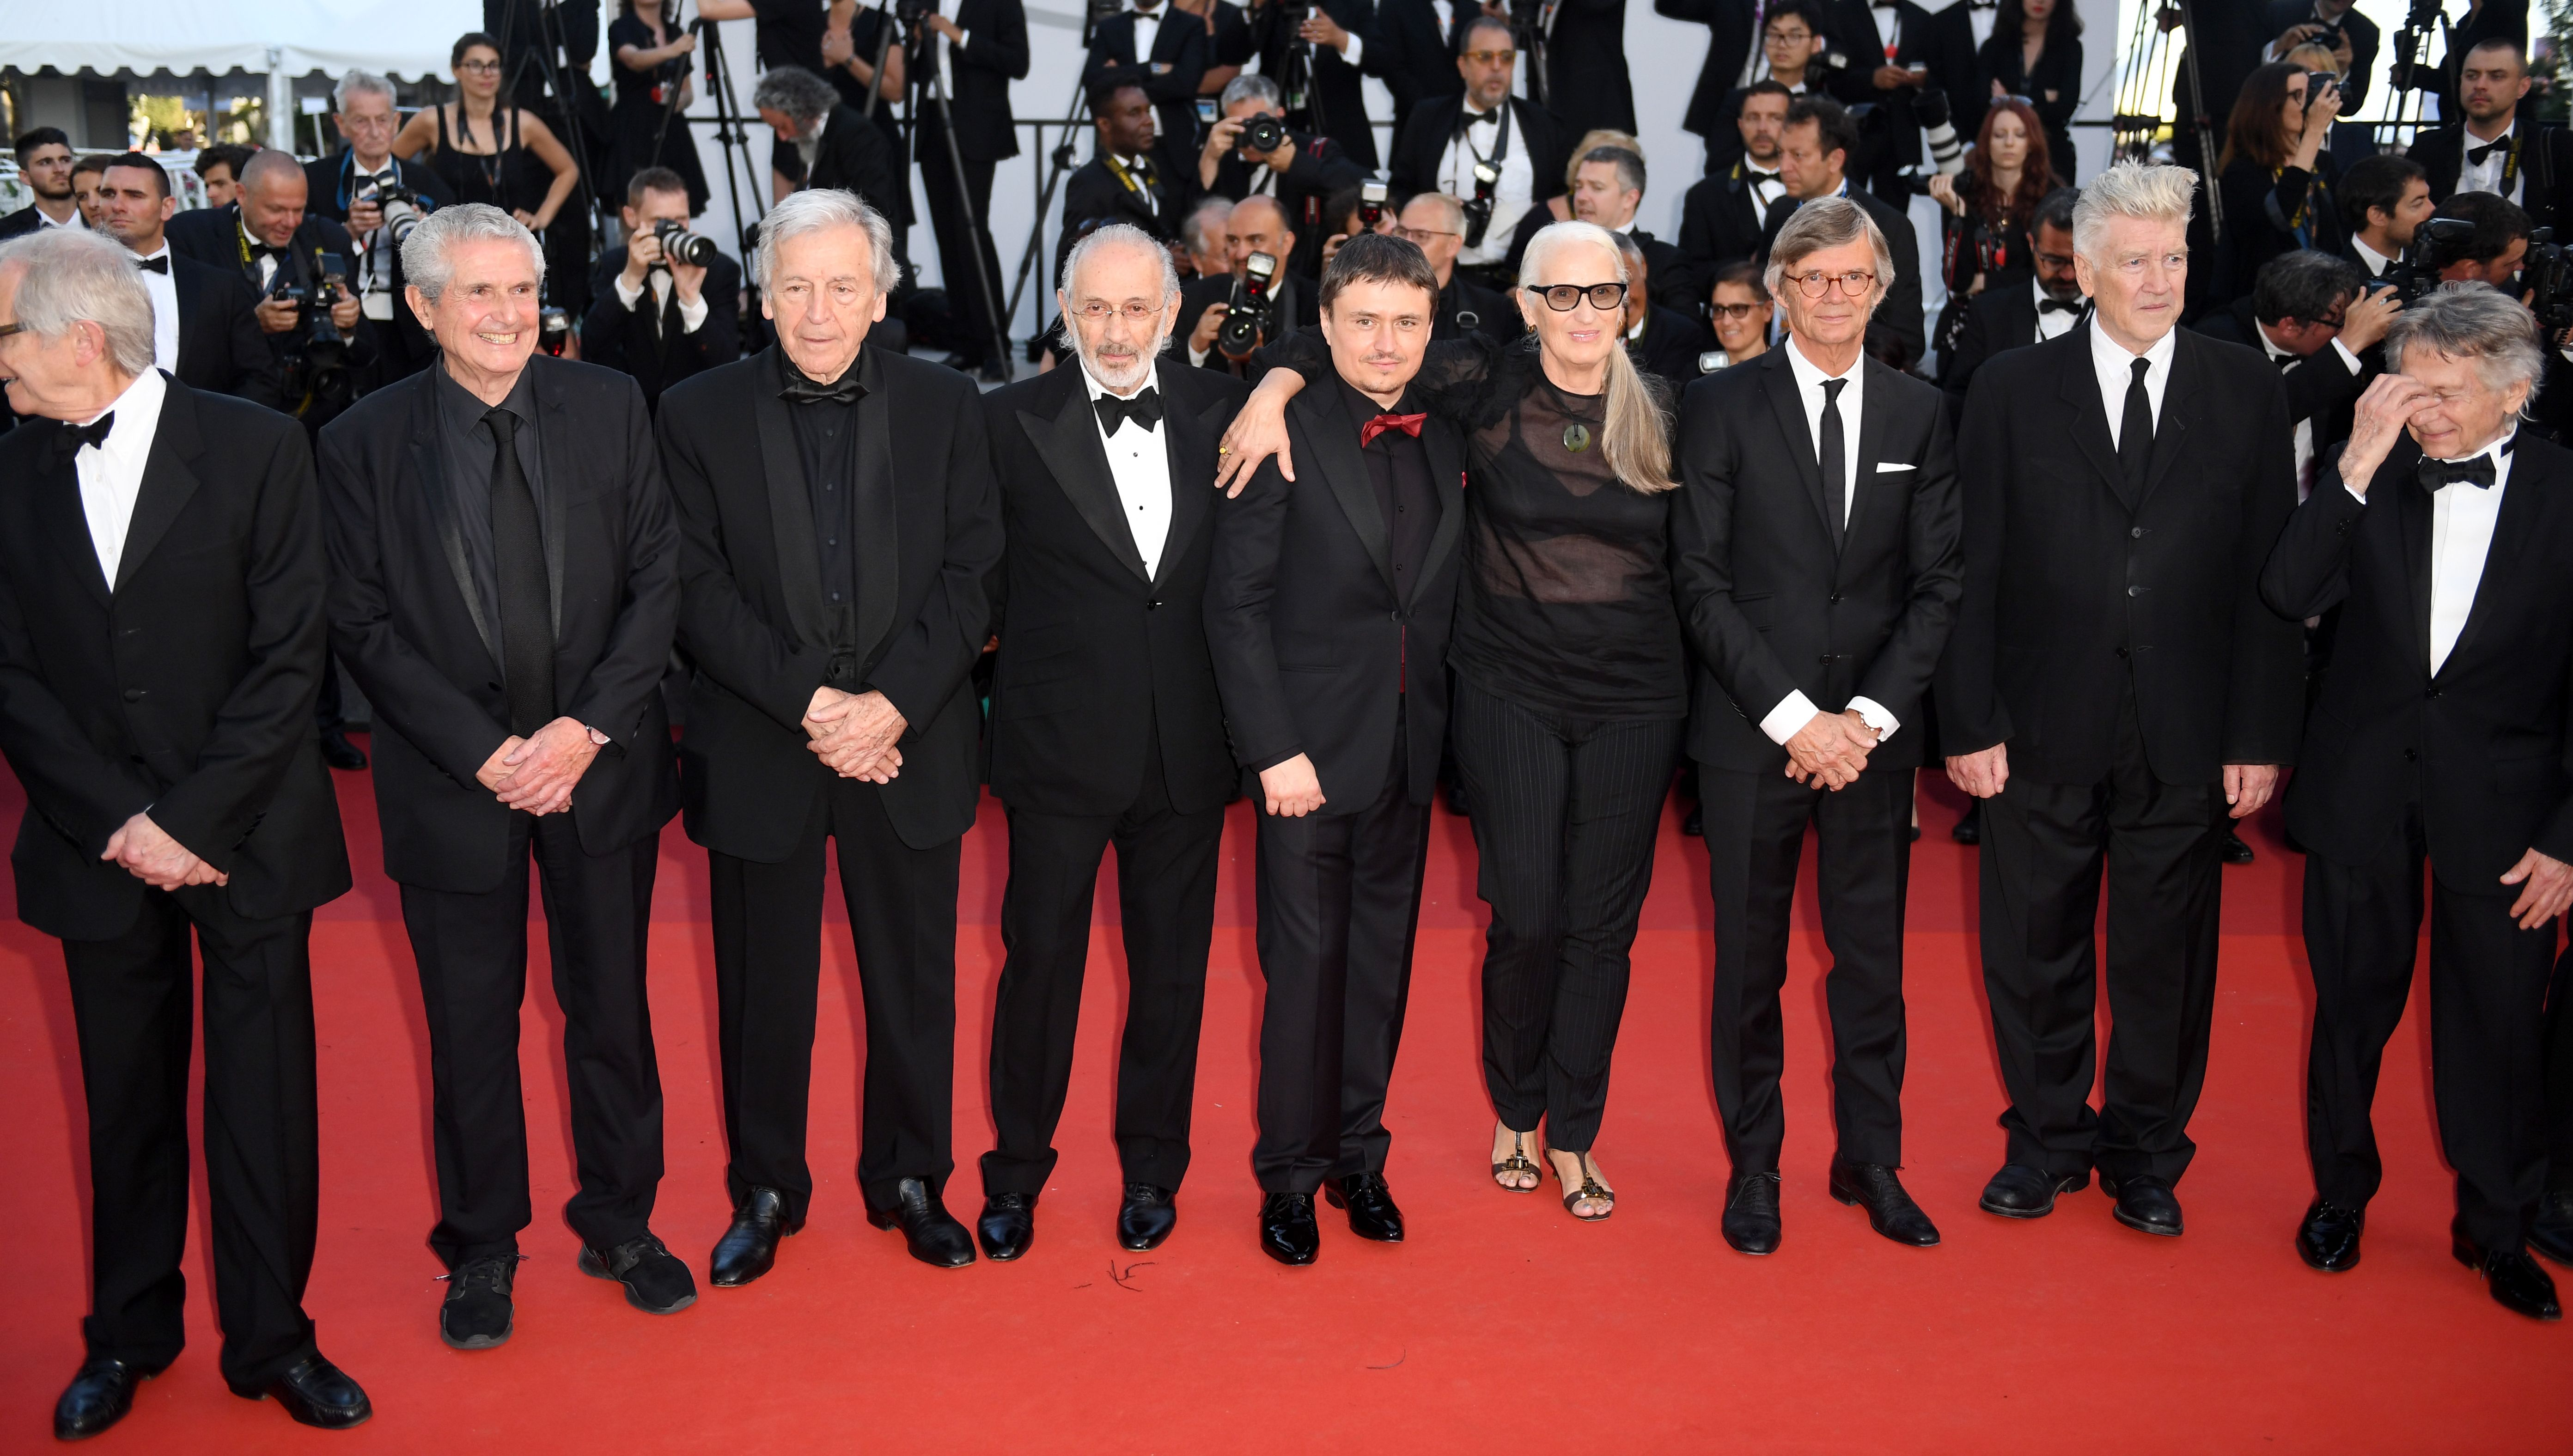 Ken Loach, Claude Lelouch, Costa-Gavras, Jerry Schatzberg, Roman Polanski, Cristian Mungiu, Jane Campion, Bille August, David Lynch, Nanni MorettiAnniversary Soiree, 70th Cannes Film Festival, France - 23 May 2017